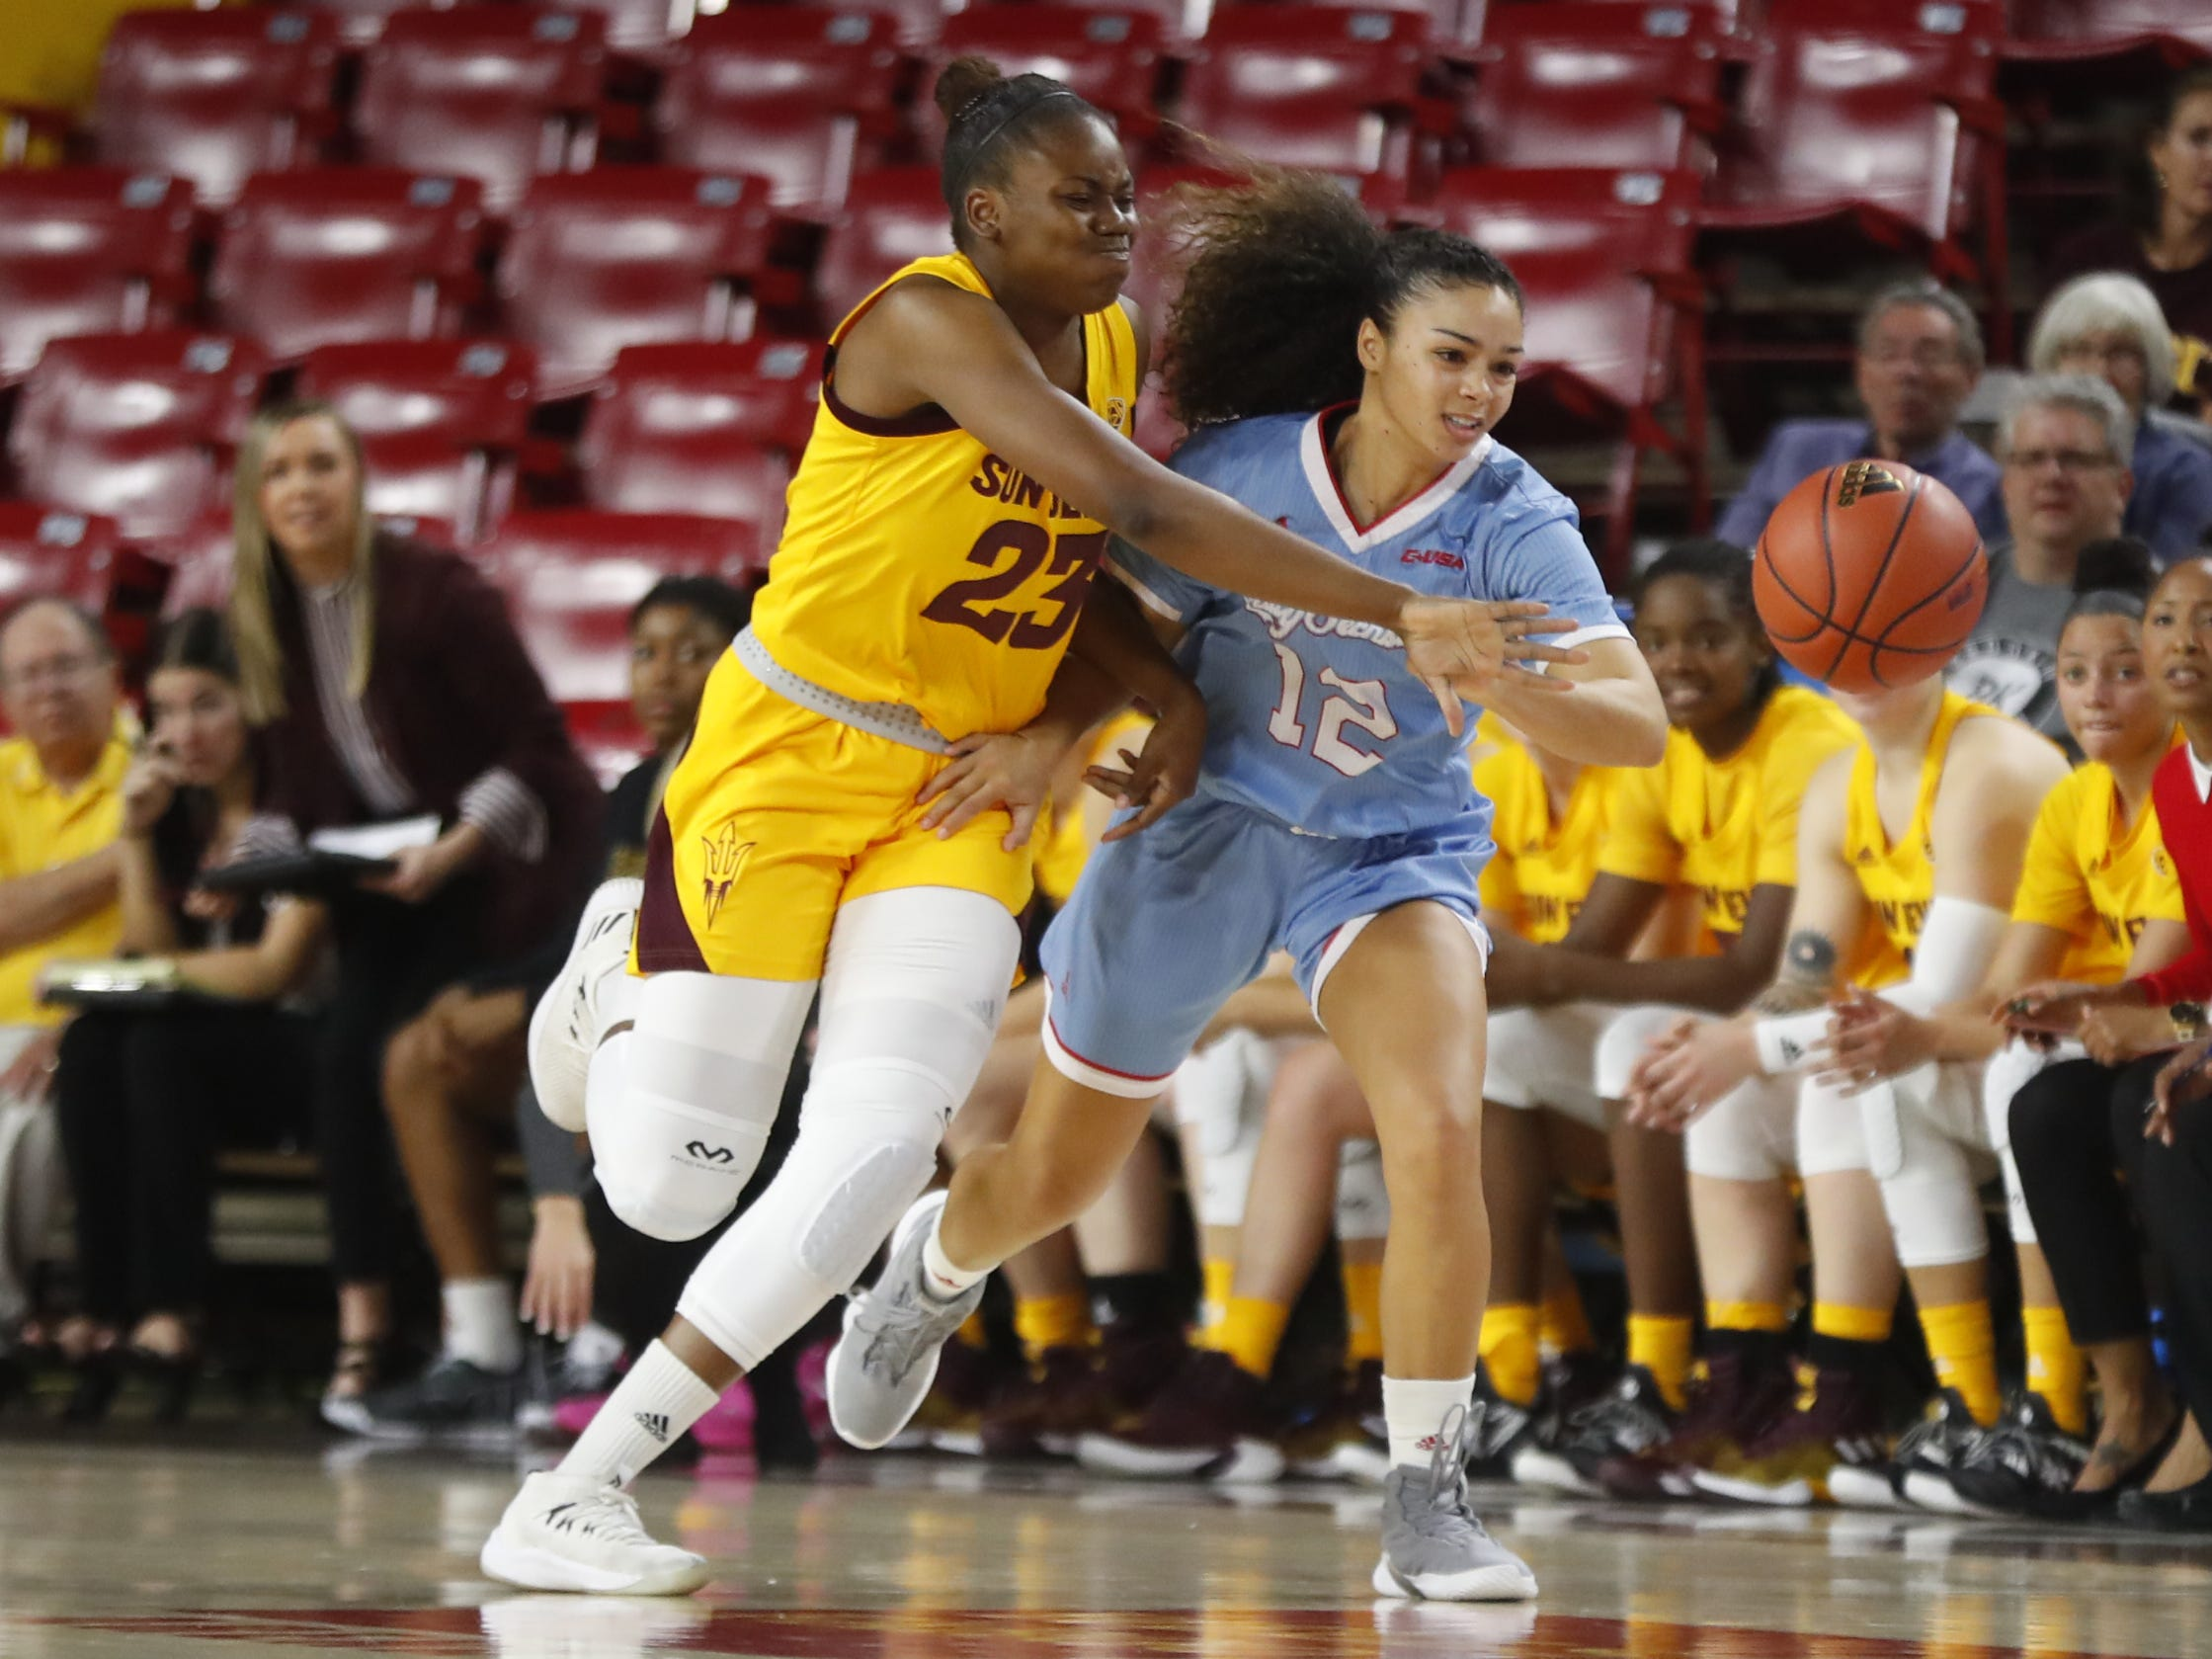 ASU's Iris Mbulito (23) attempts to steal the ball away from Louisiana Tech's Daria McCutcheon (12) during the first half at Wells Fargo Arena in Tempe, Ariz. on November 30, 2018.